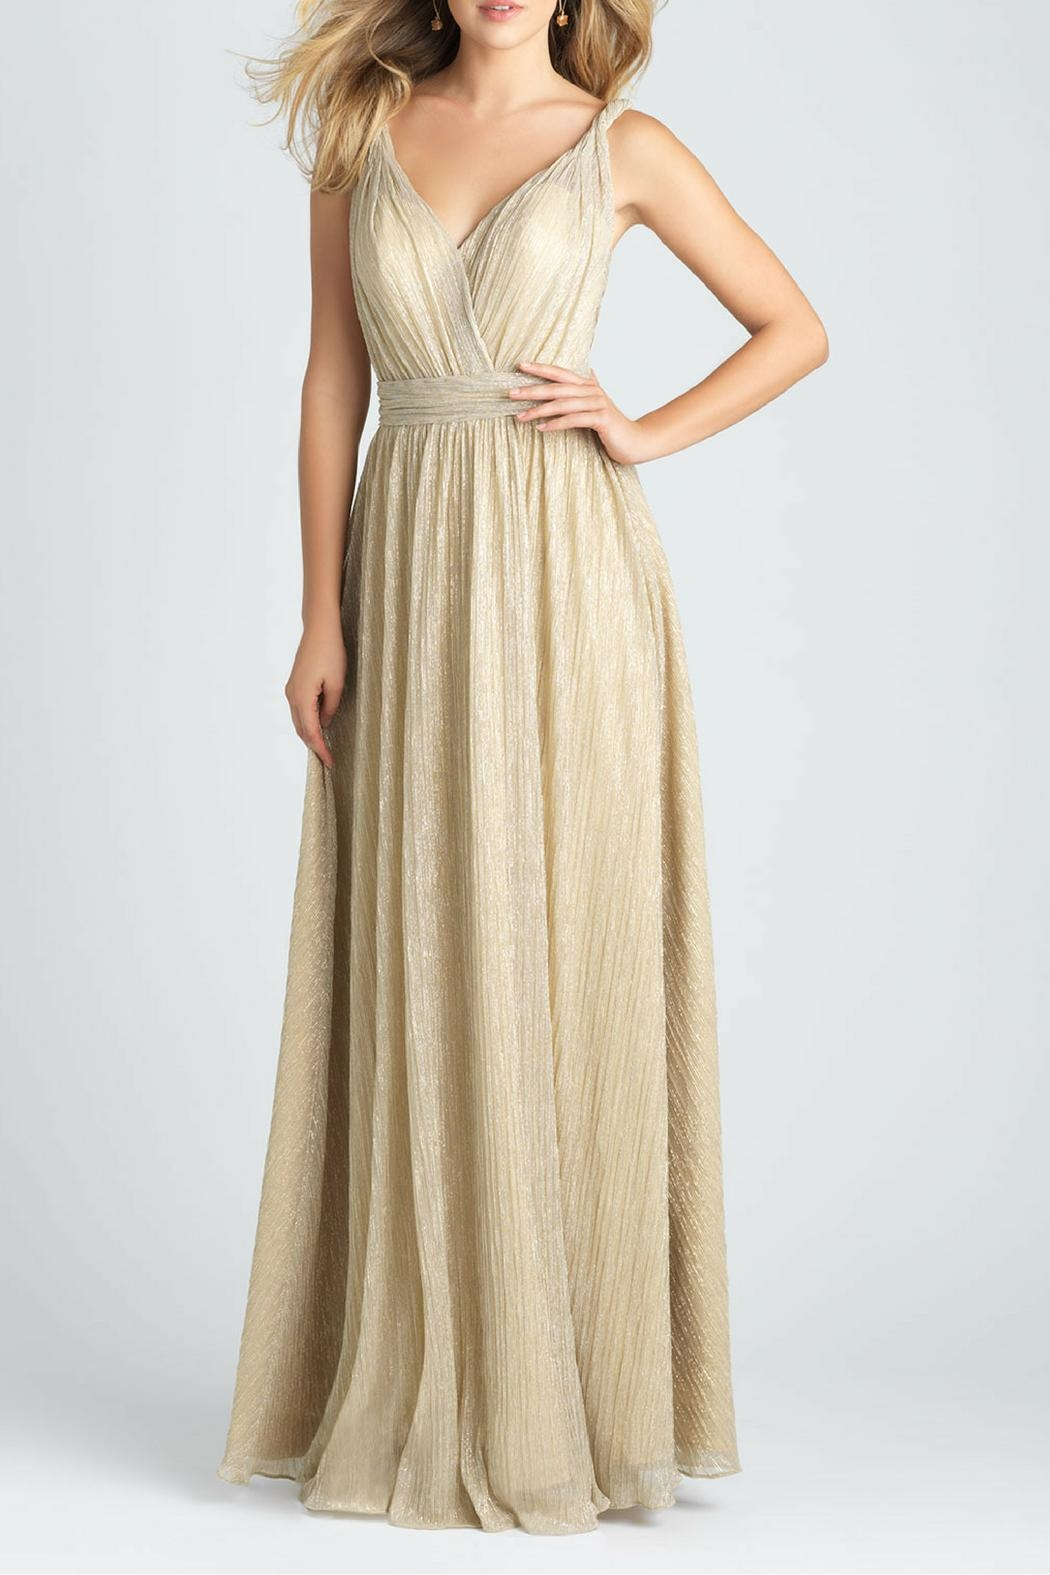 Allure Bridals Shimmer Bridesmaid Gown - Main Image